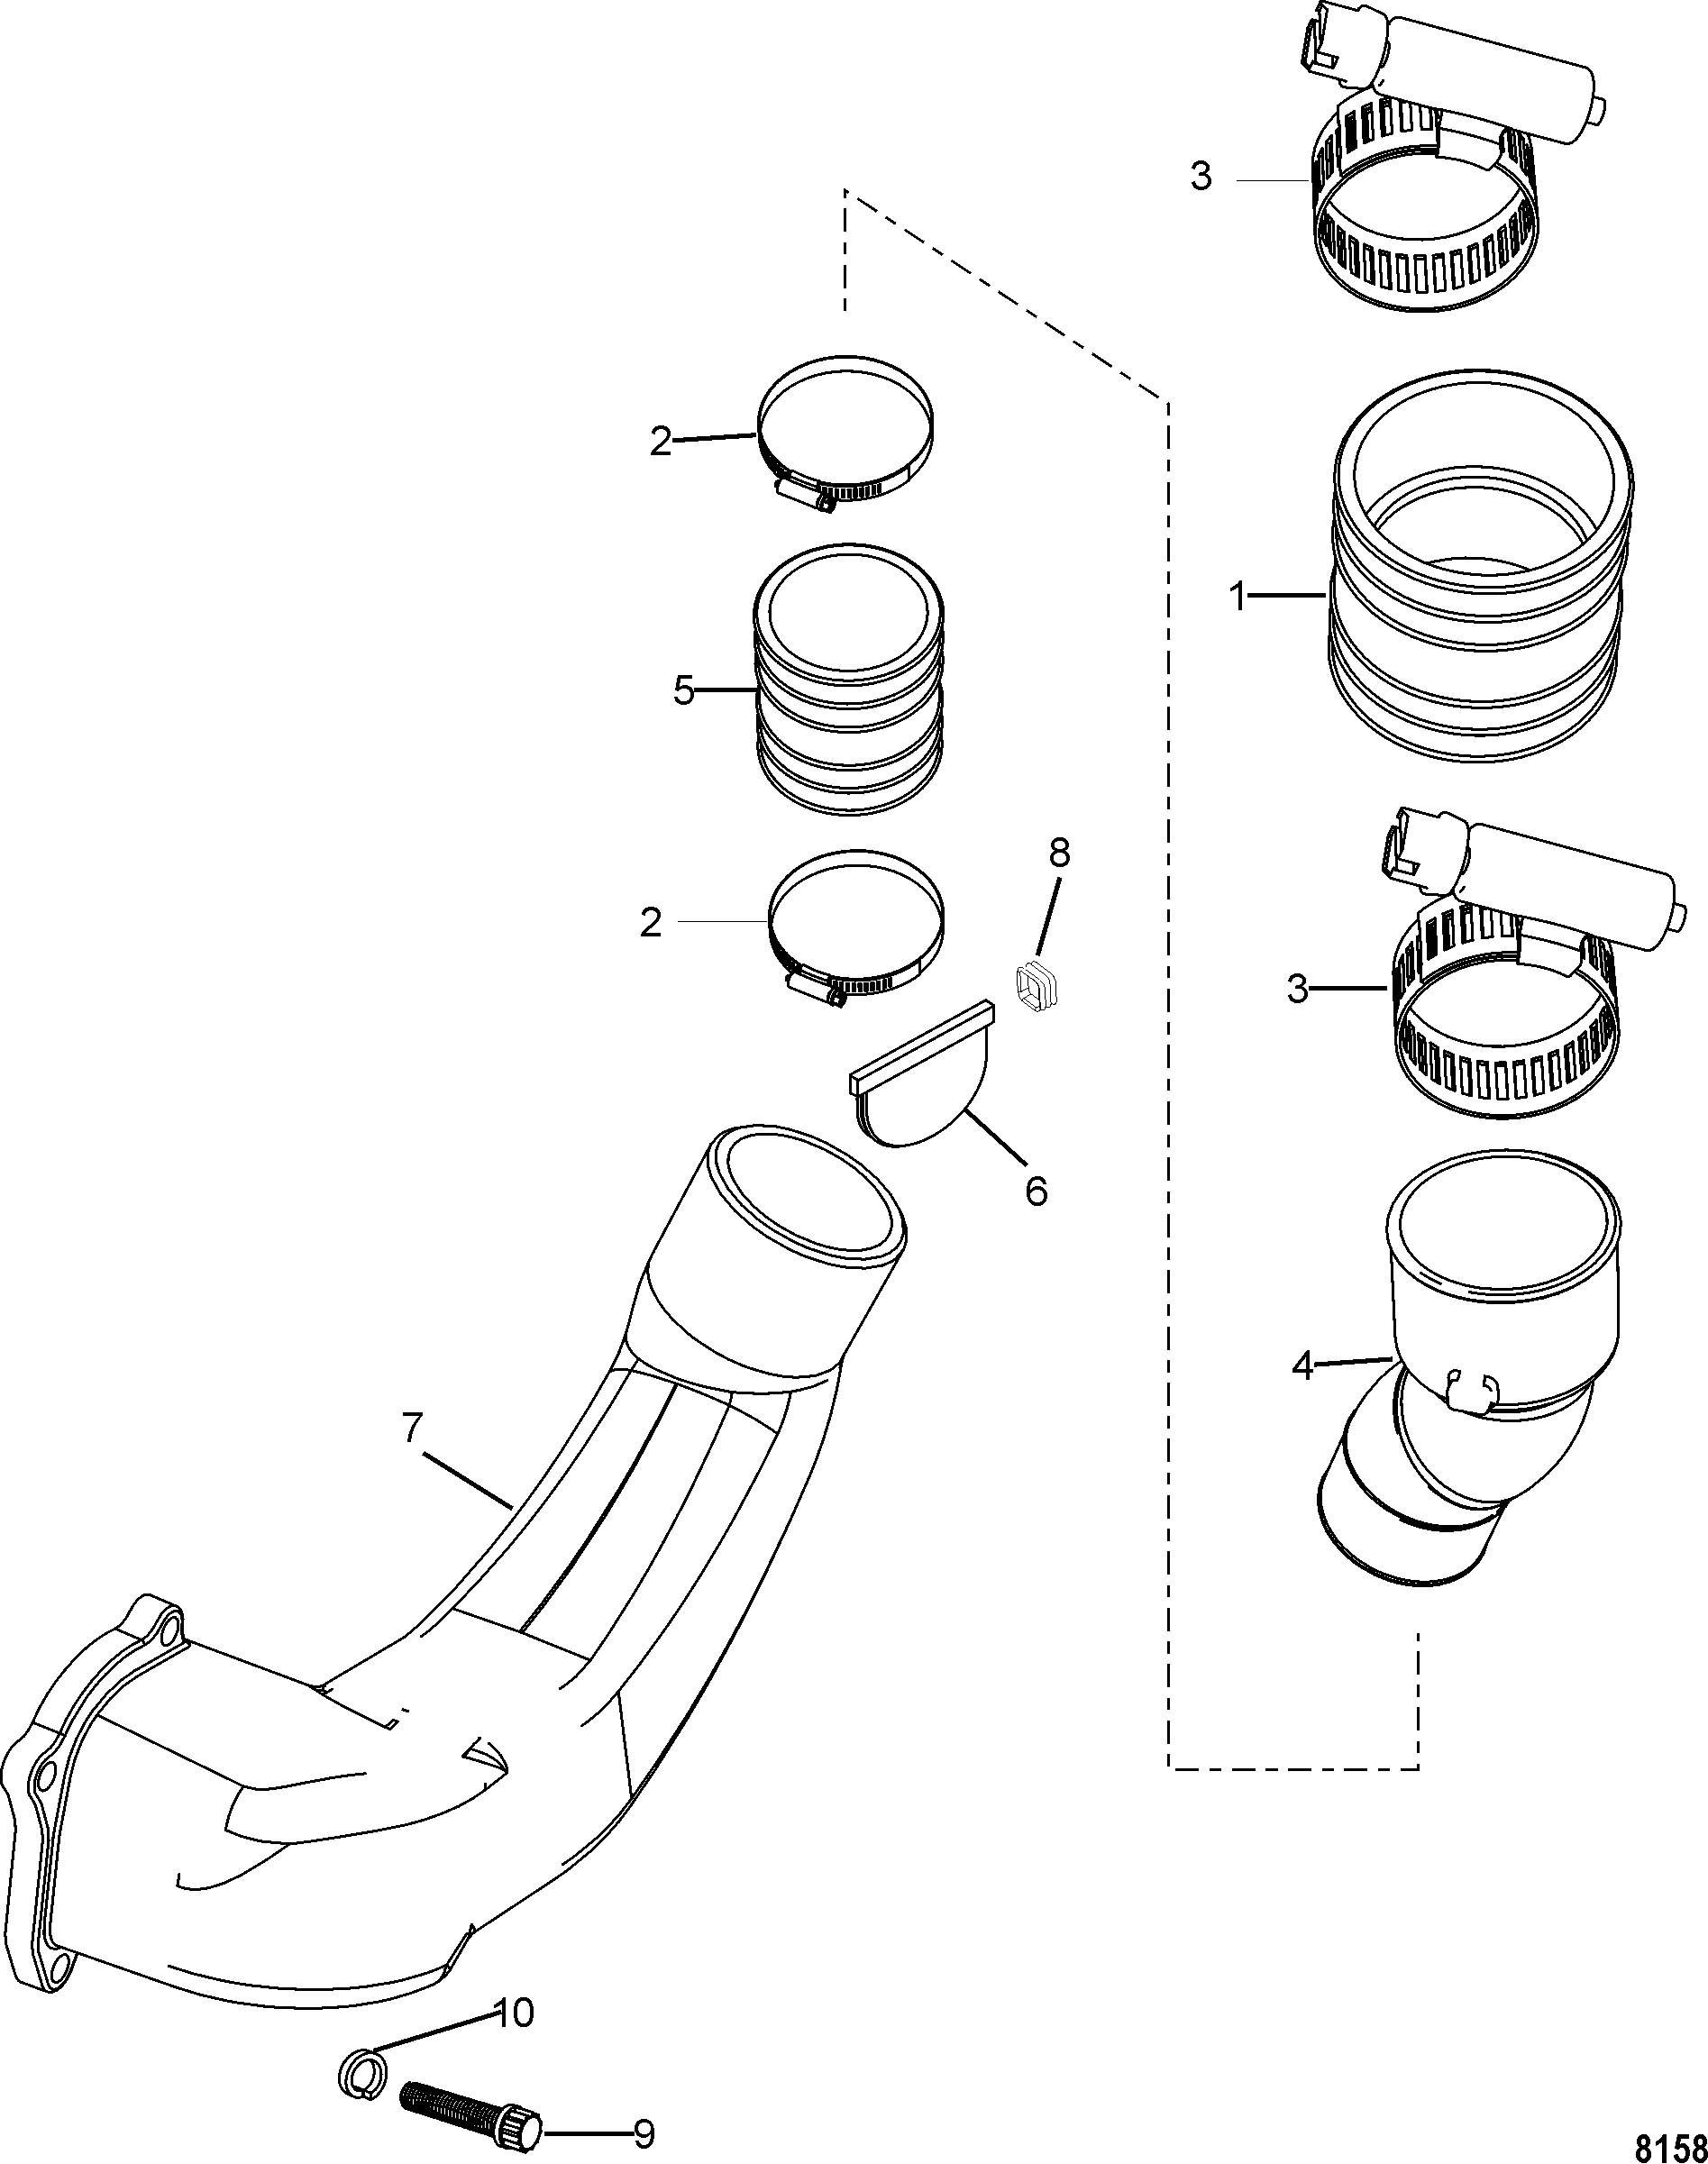 Exhaust System FOR MERCRUISER 3.0L ALPHA ONE